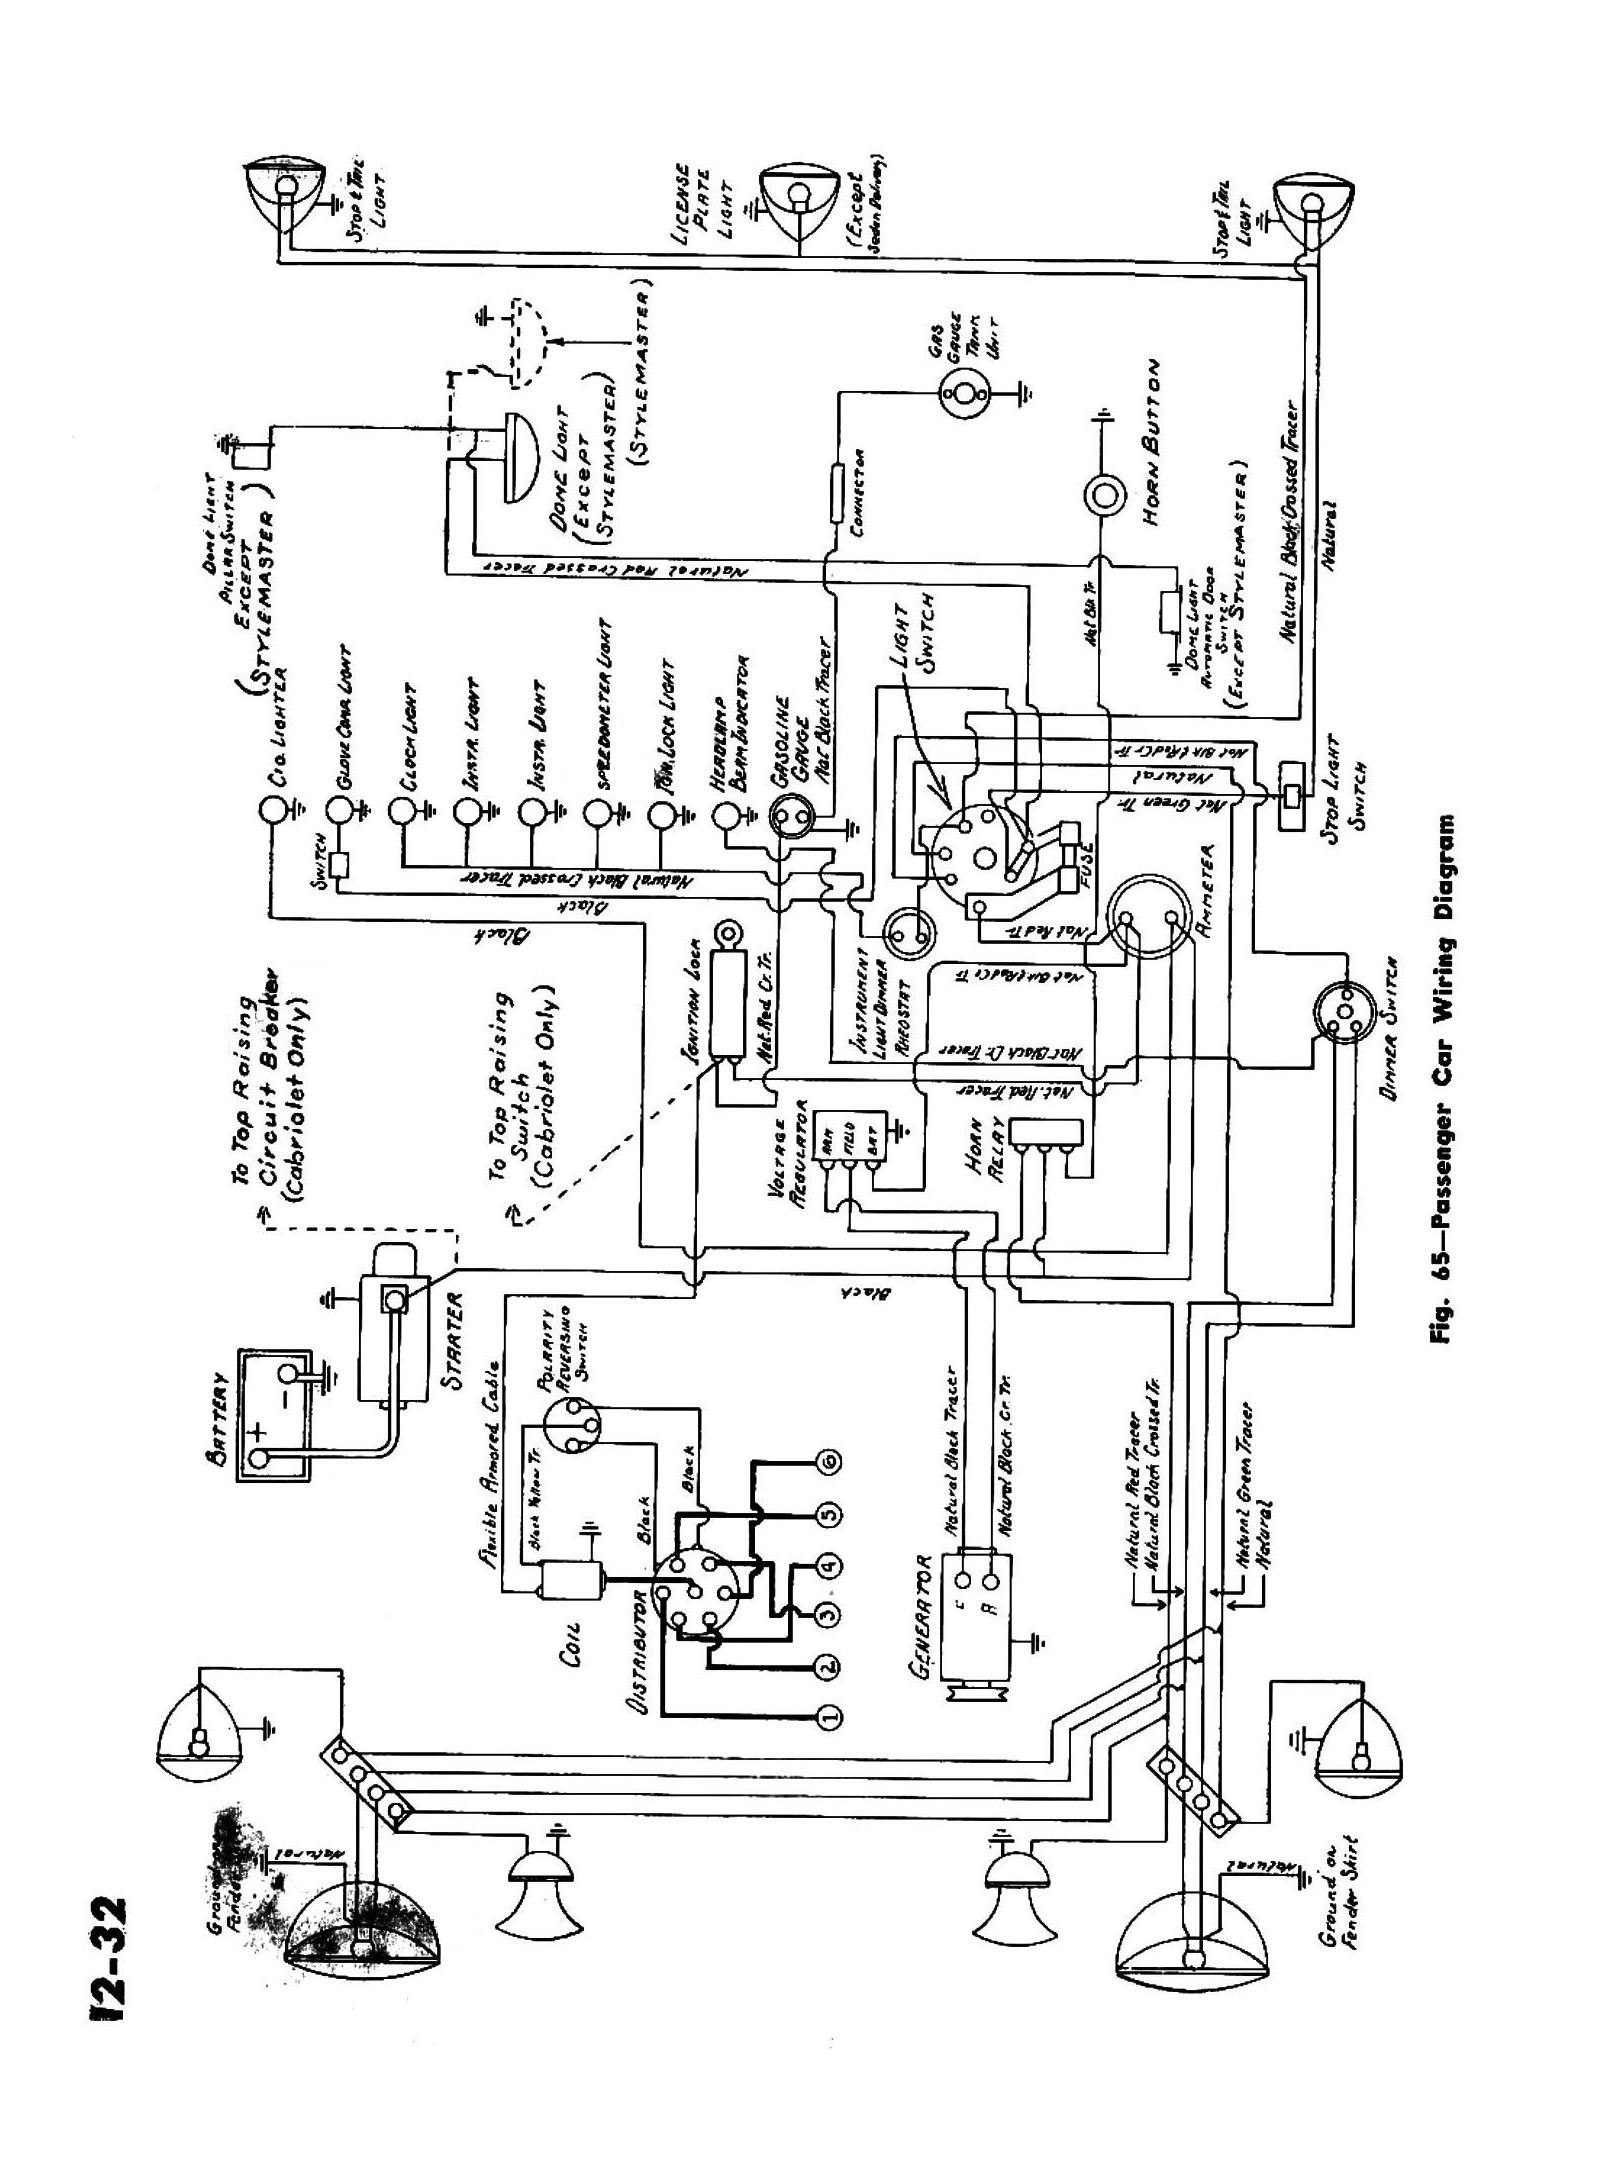 45car chevy wiring diagrams find wiring diagram for 87 ford f 150 at metegol.co